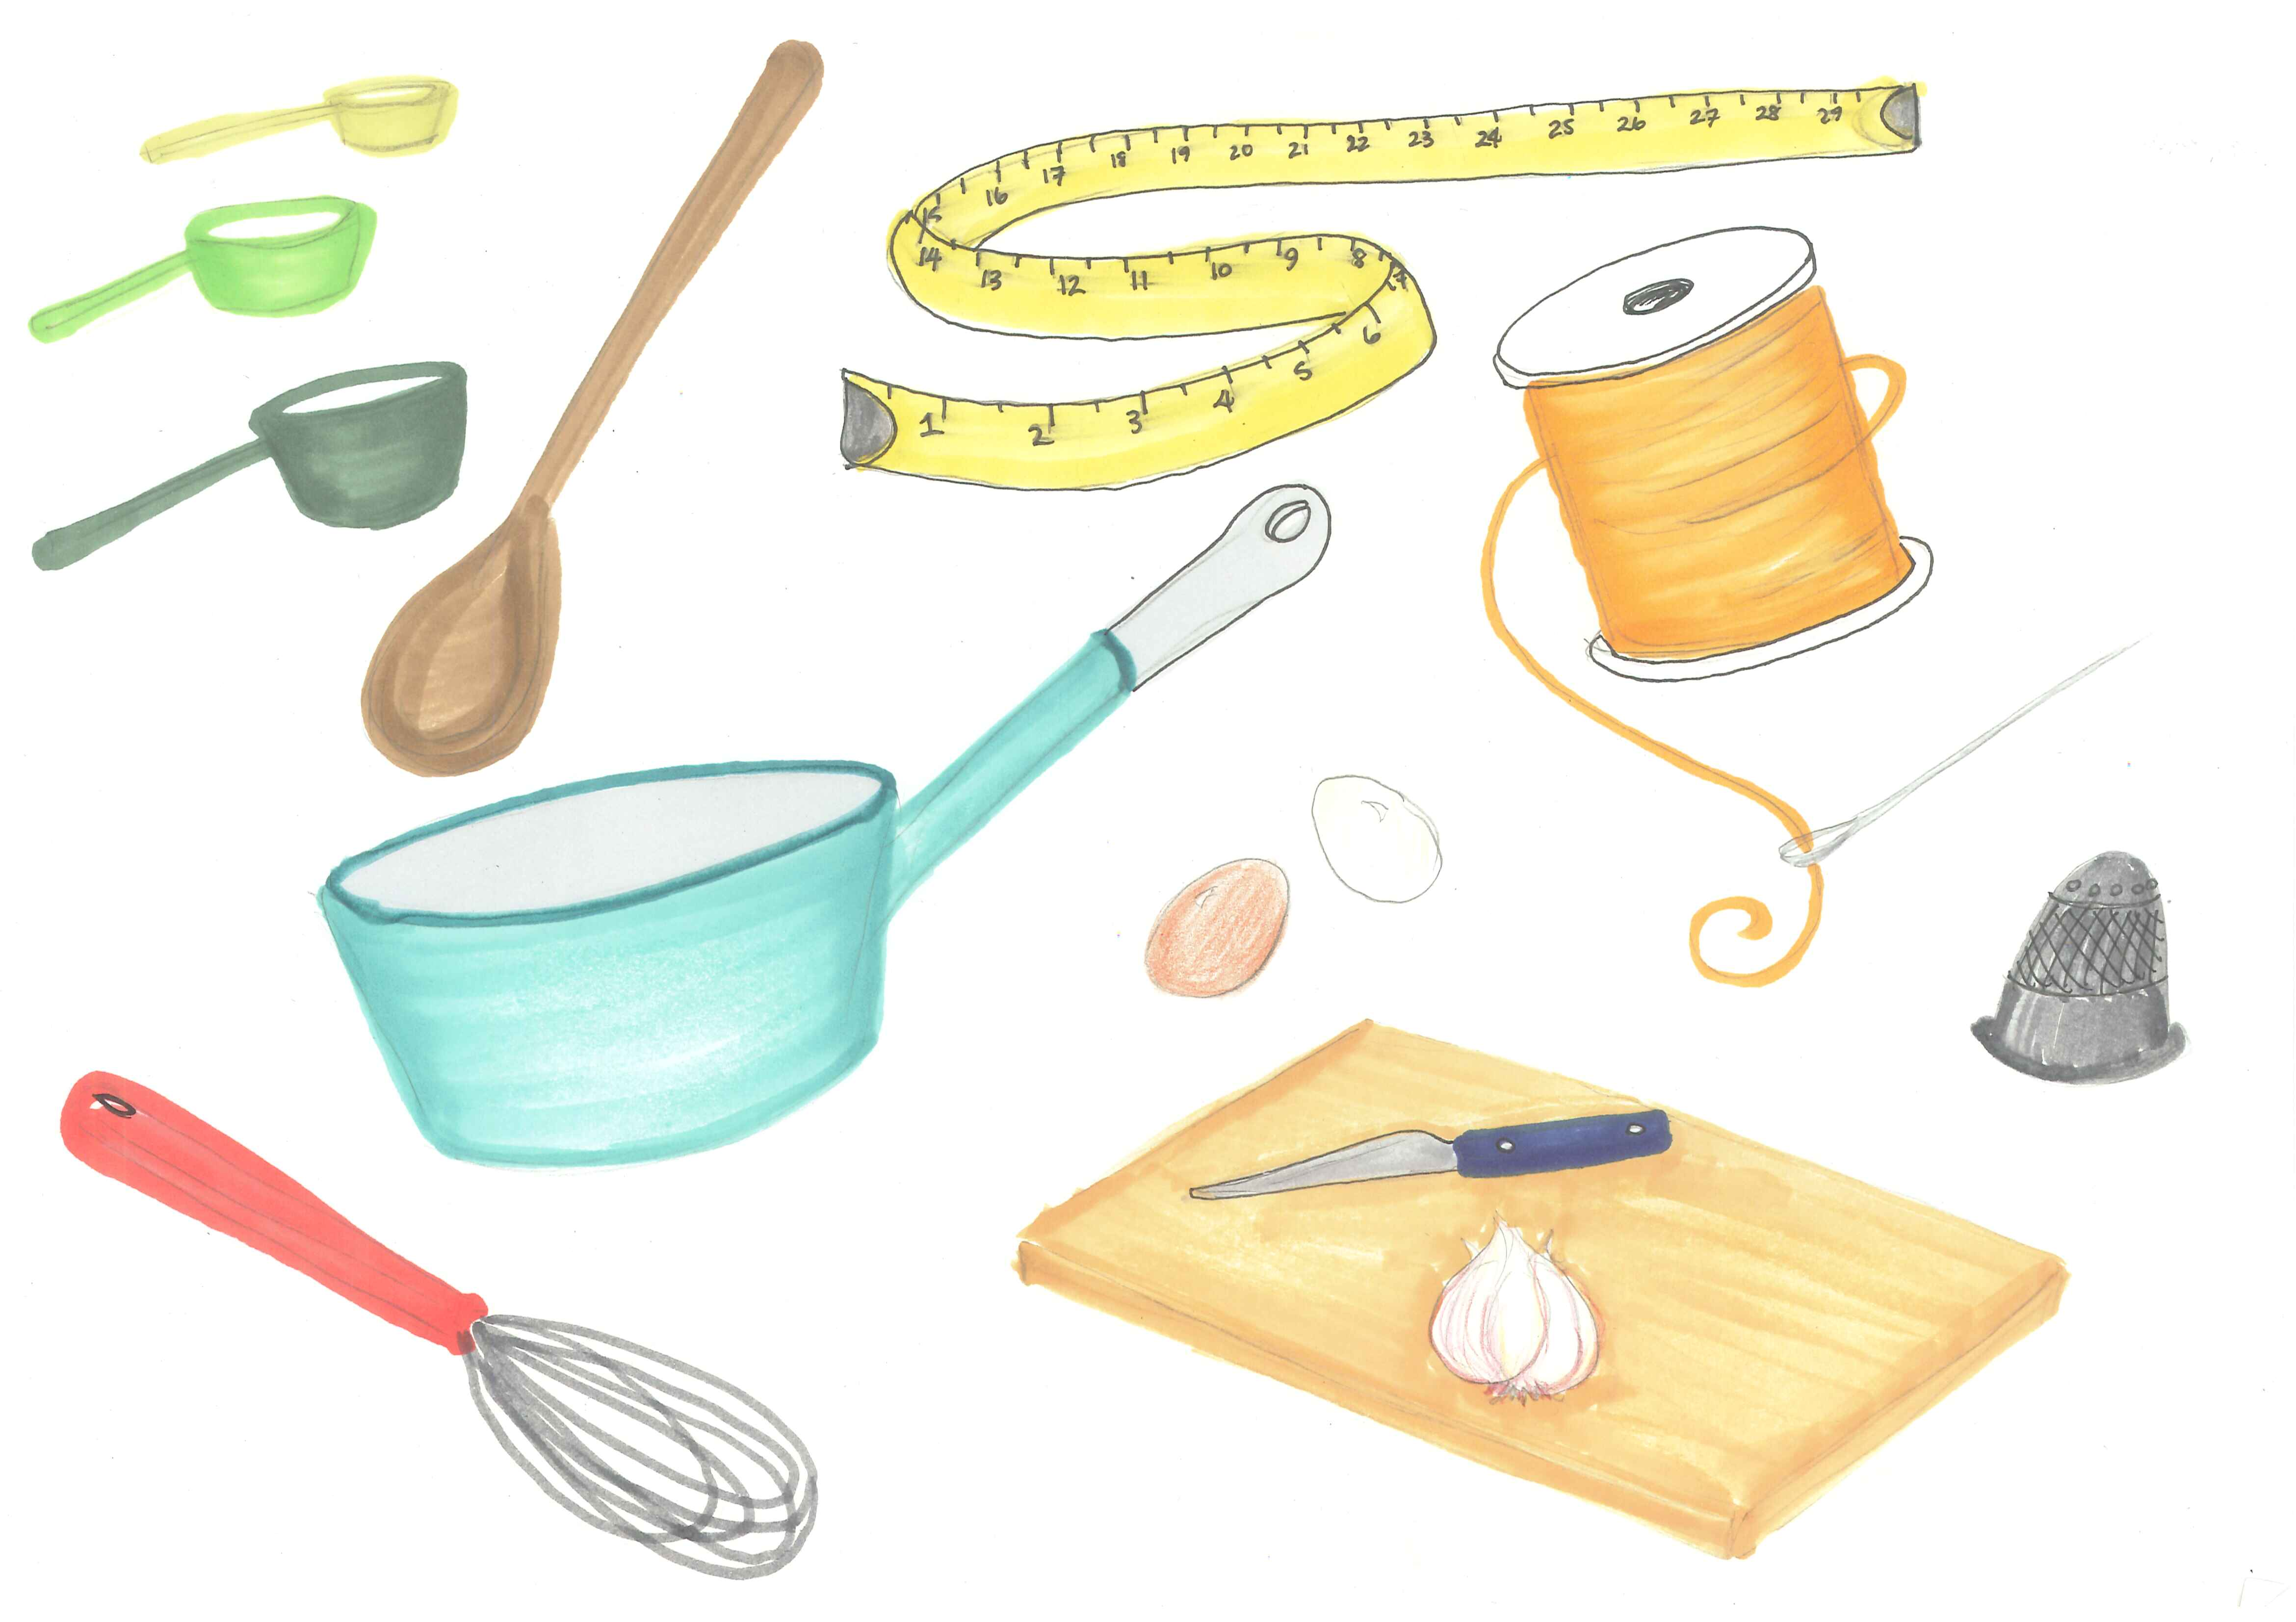 painting ideas for kitchen with Home Economics Clipart 63837018 on Home Economics Clipart 63837018 also Is A Hamster The Right Pet For You 1238971 together with Make Cafe Con Leche Coffee With Milk 3083079 as well Kitchen Door in addition Ideas Loft Conversions.